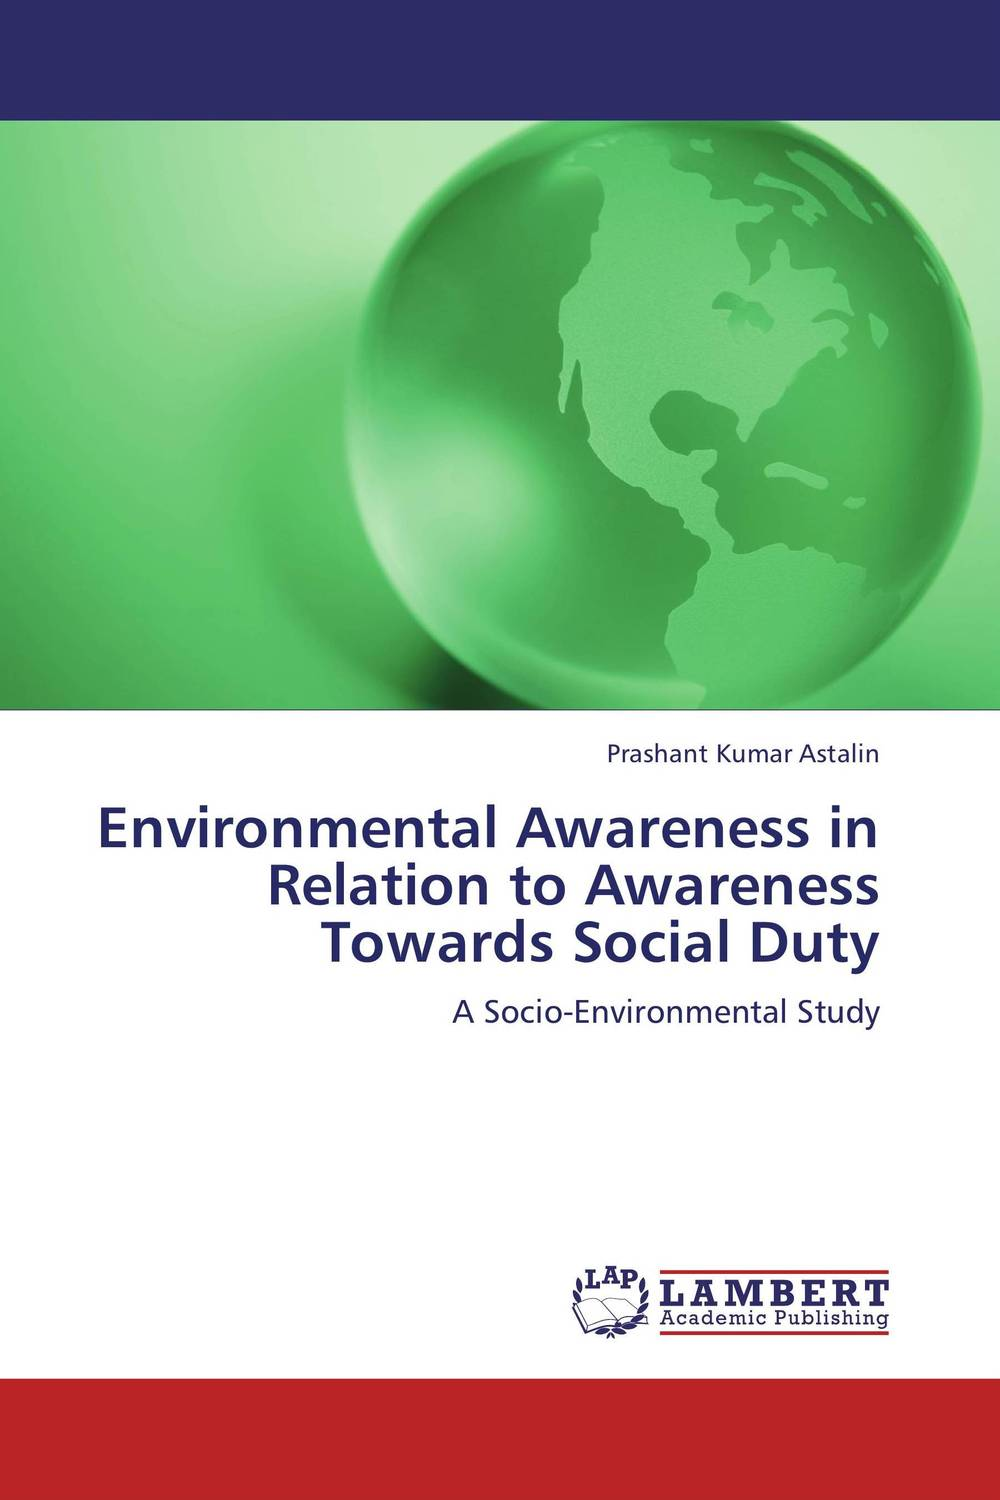 цены Environmental Awareness in Relation to Awareness Towards Social Duty